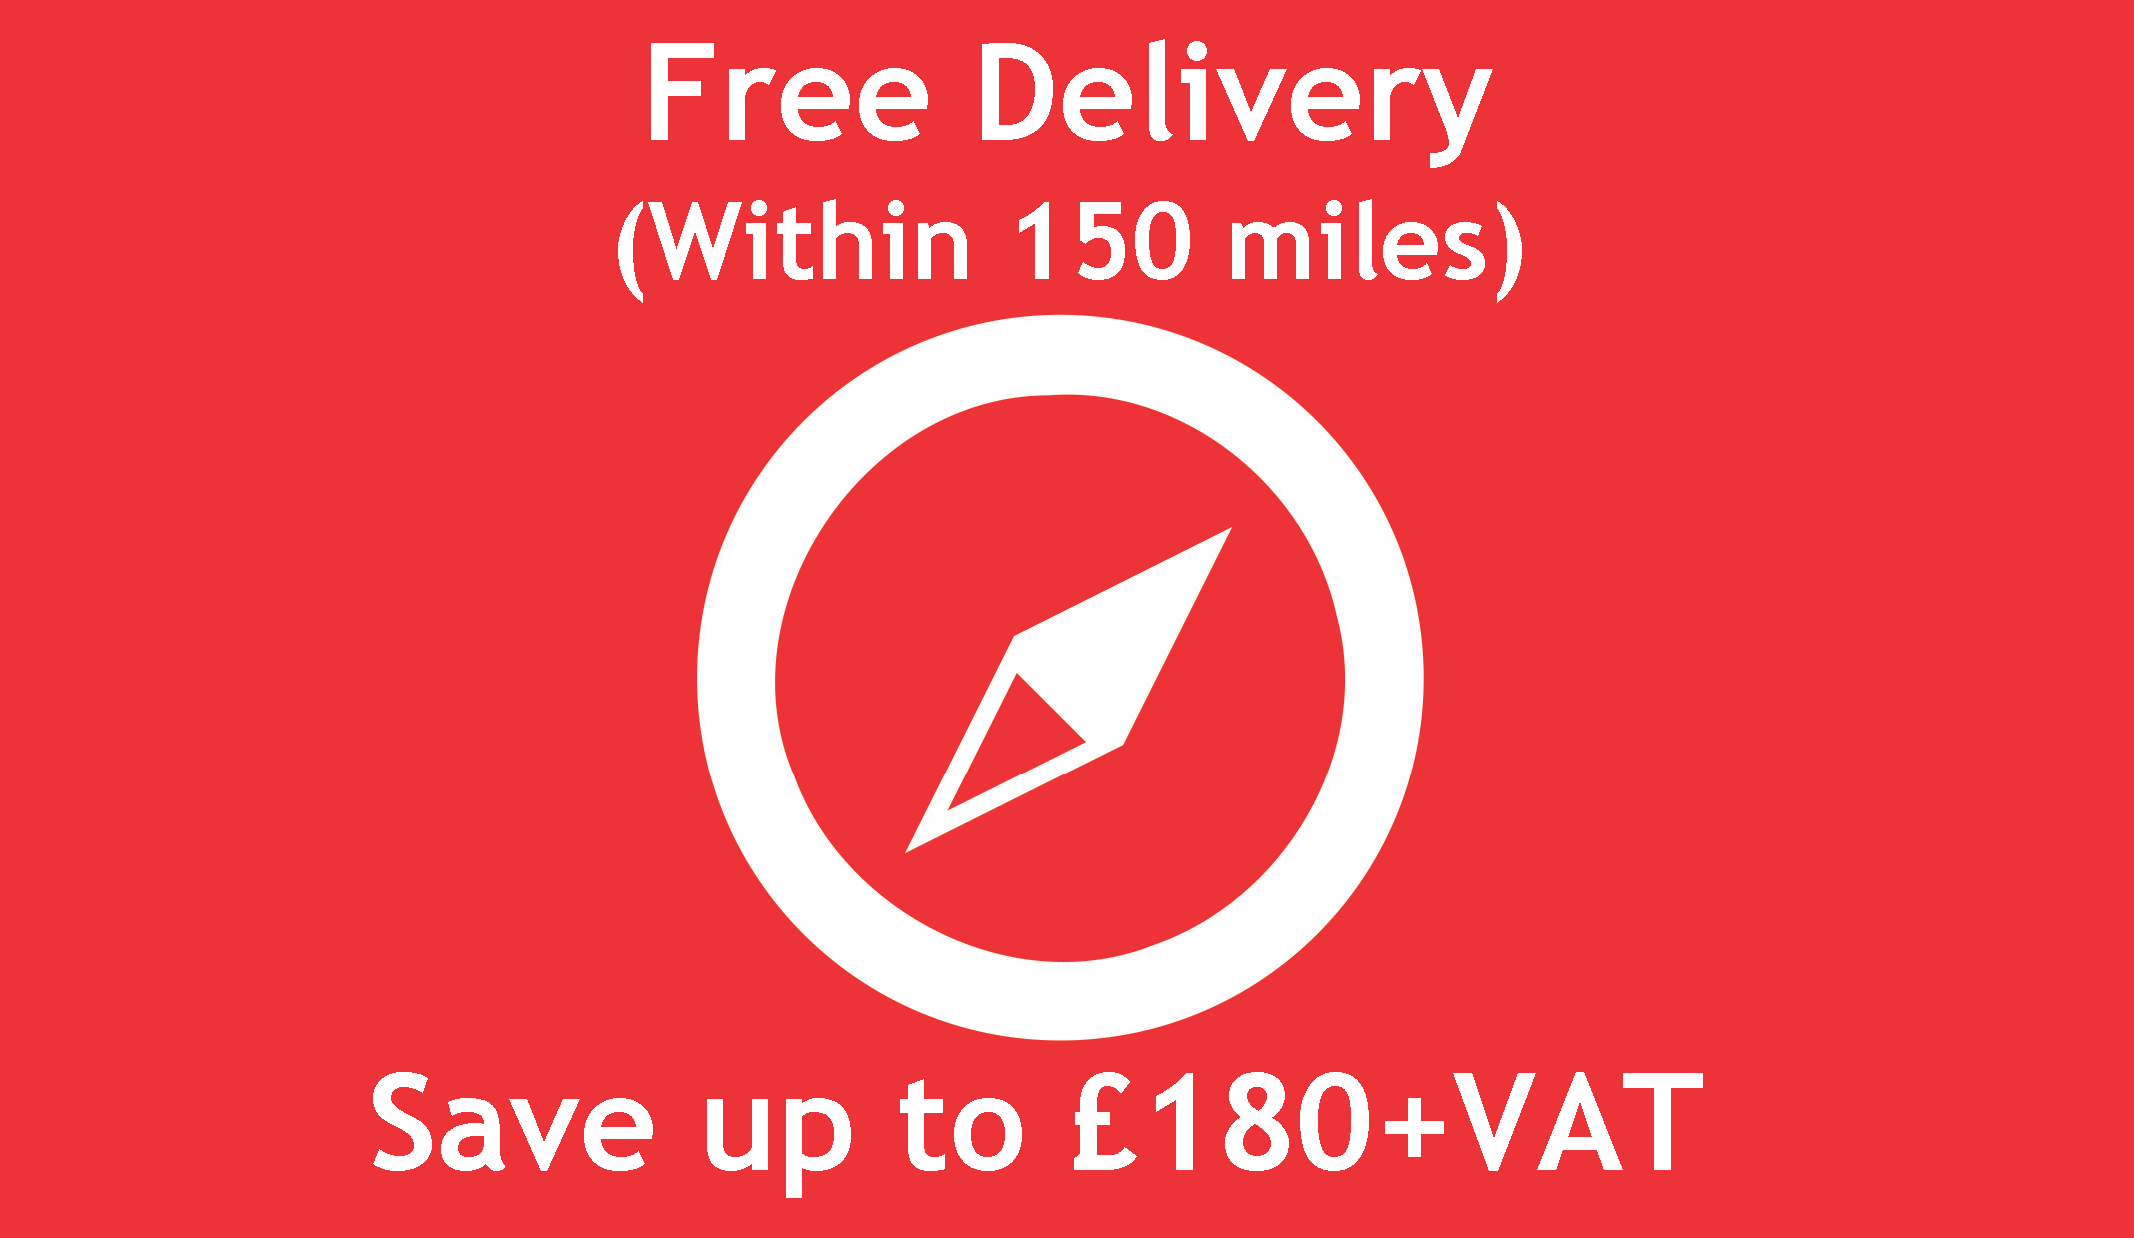 Free-Delivery-Lease